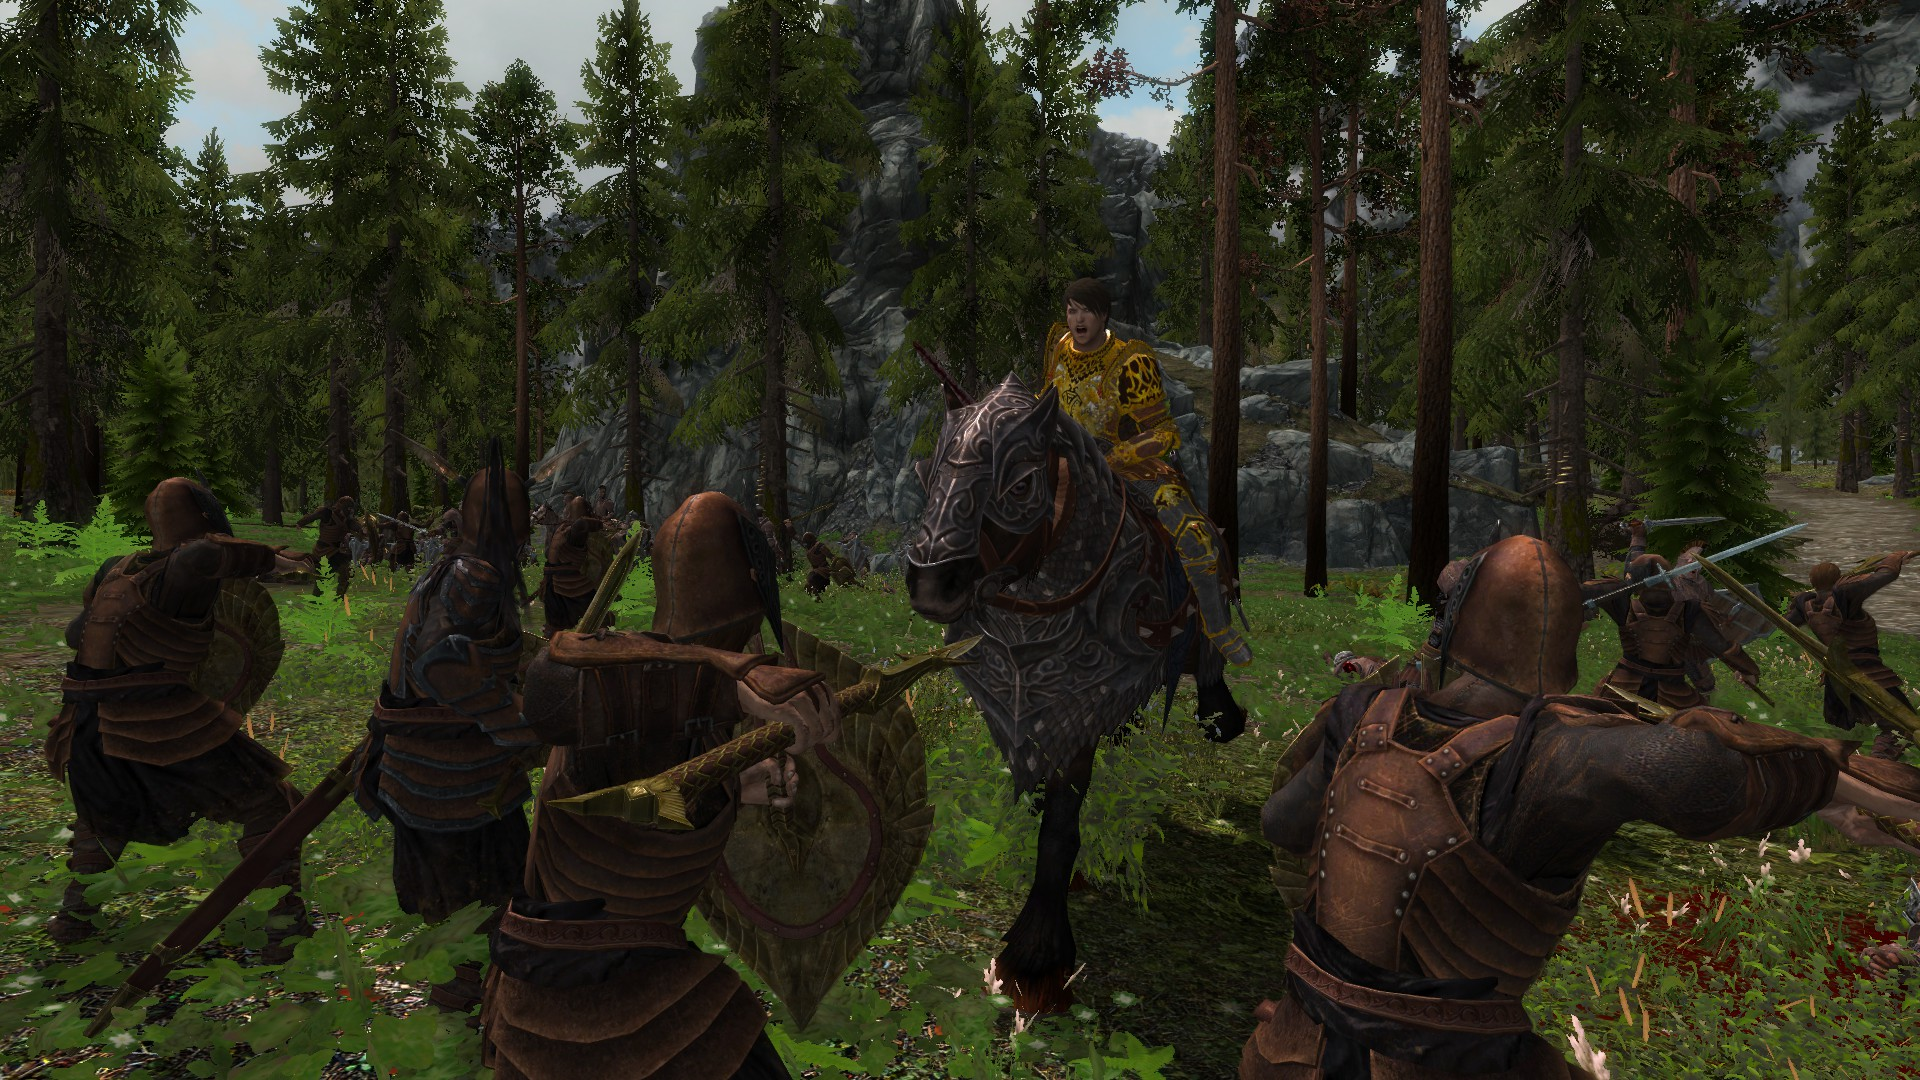 Tiber Septim image Weapons and Armors from Cyrodiil mod